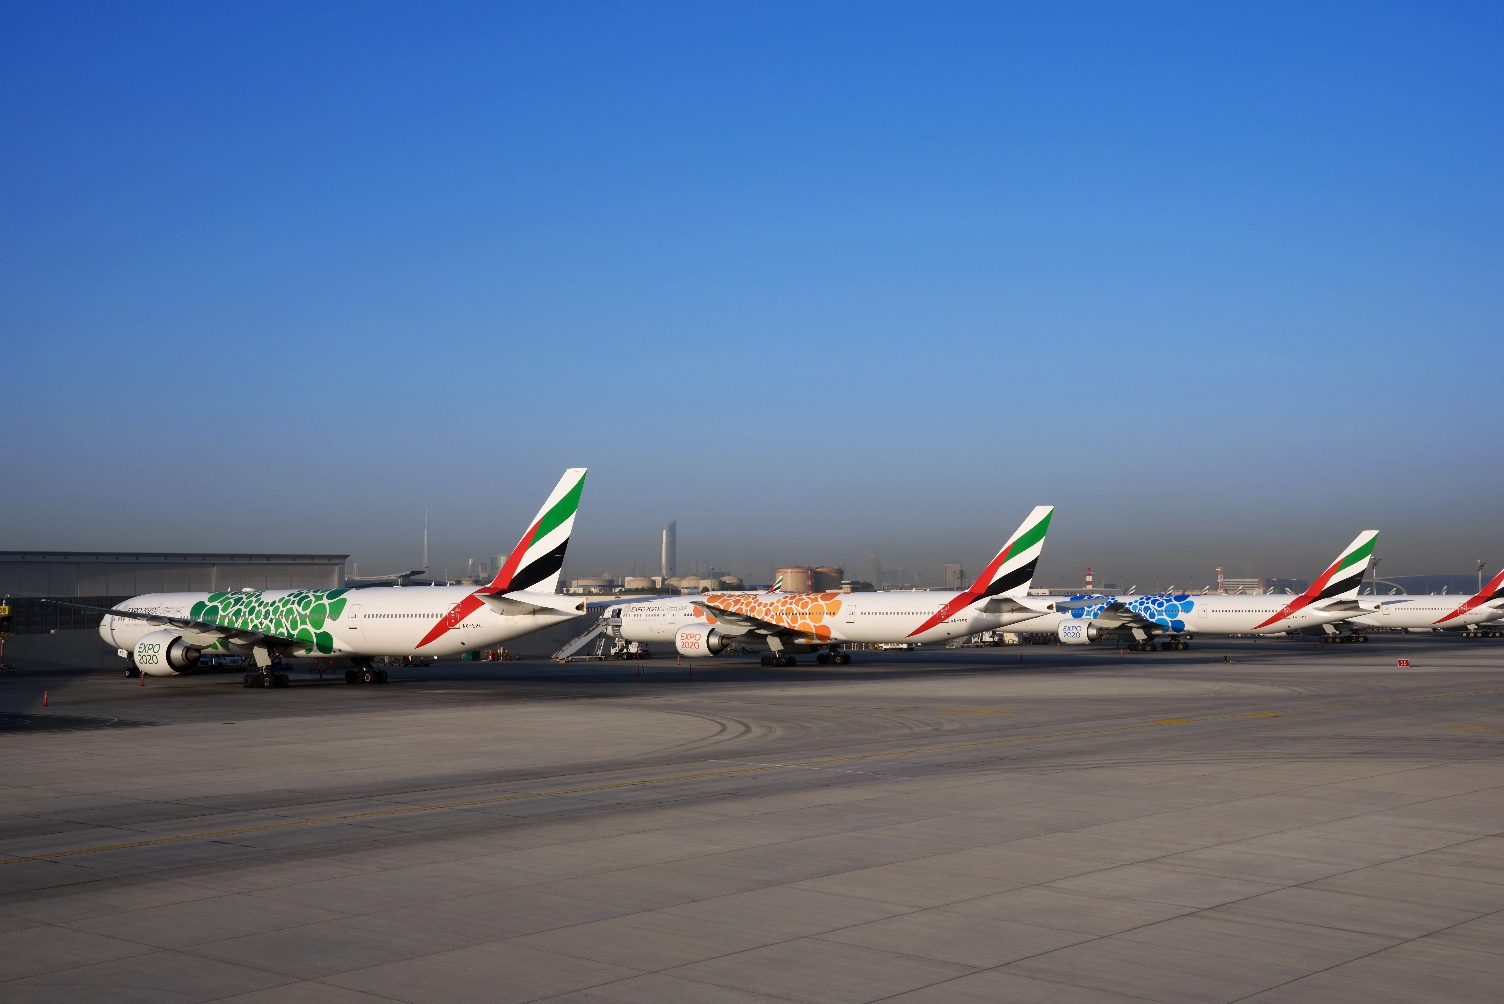 It took Emirates 15,000 hours to apply these vinyls to its fleet